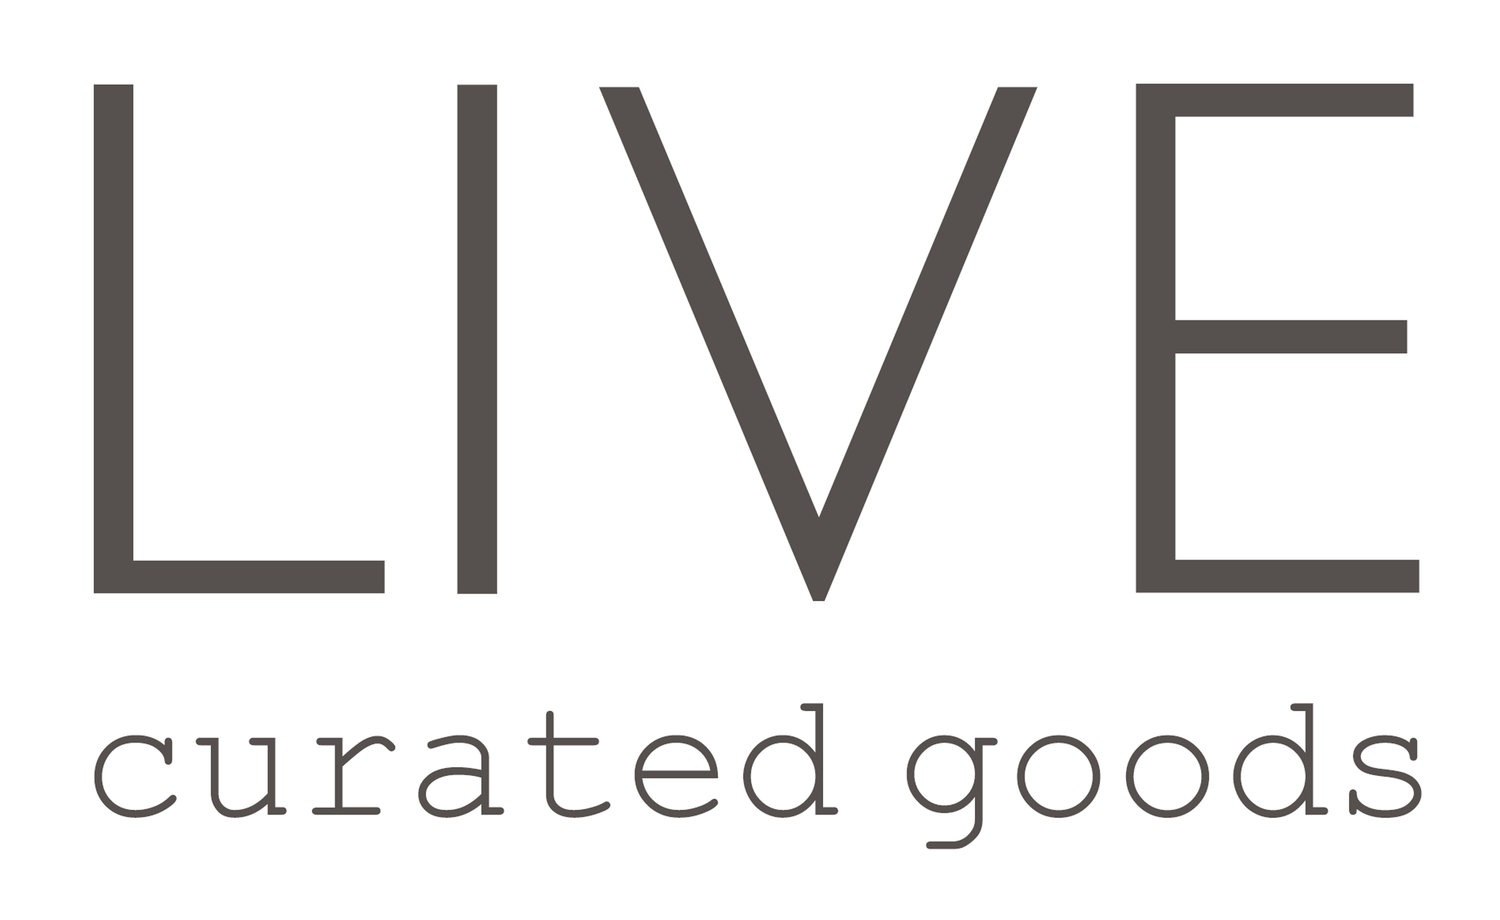 LIVE curated goods